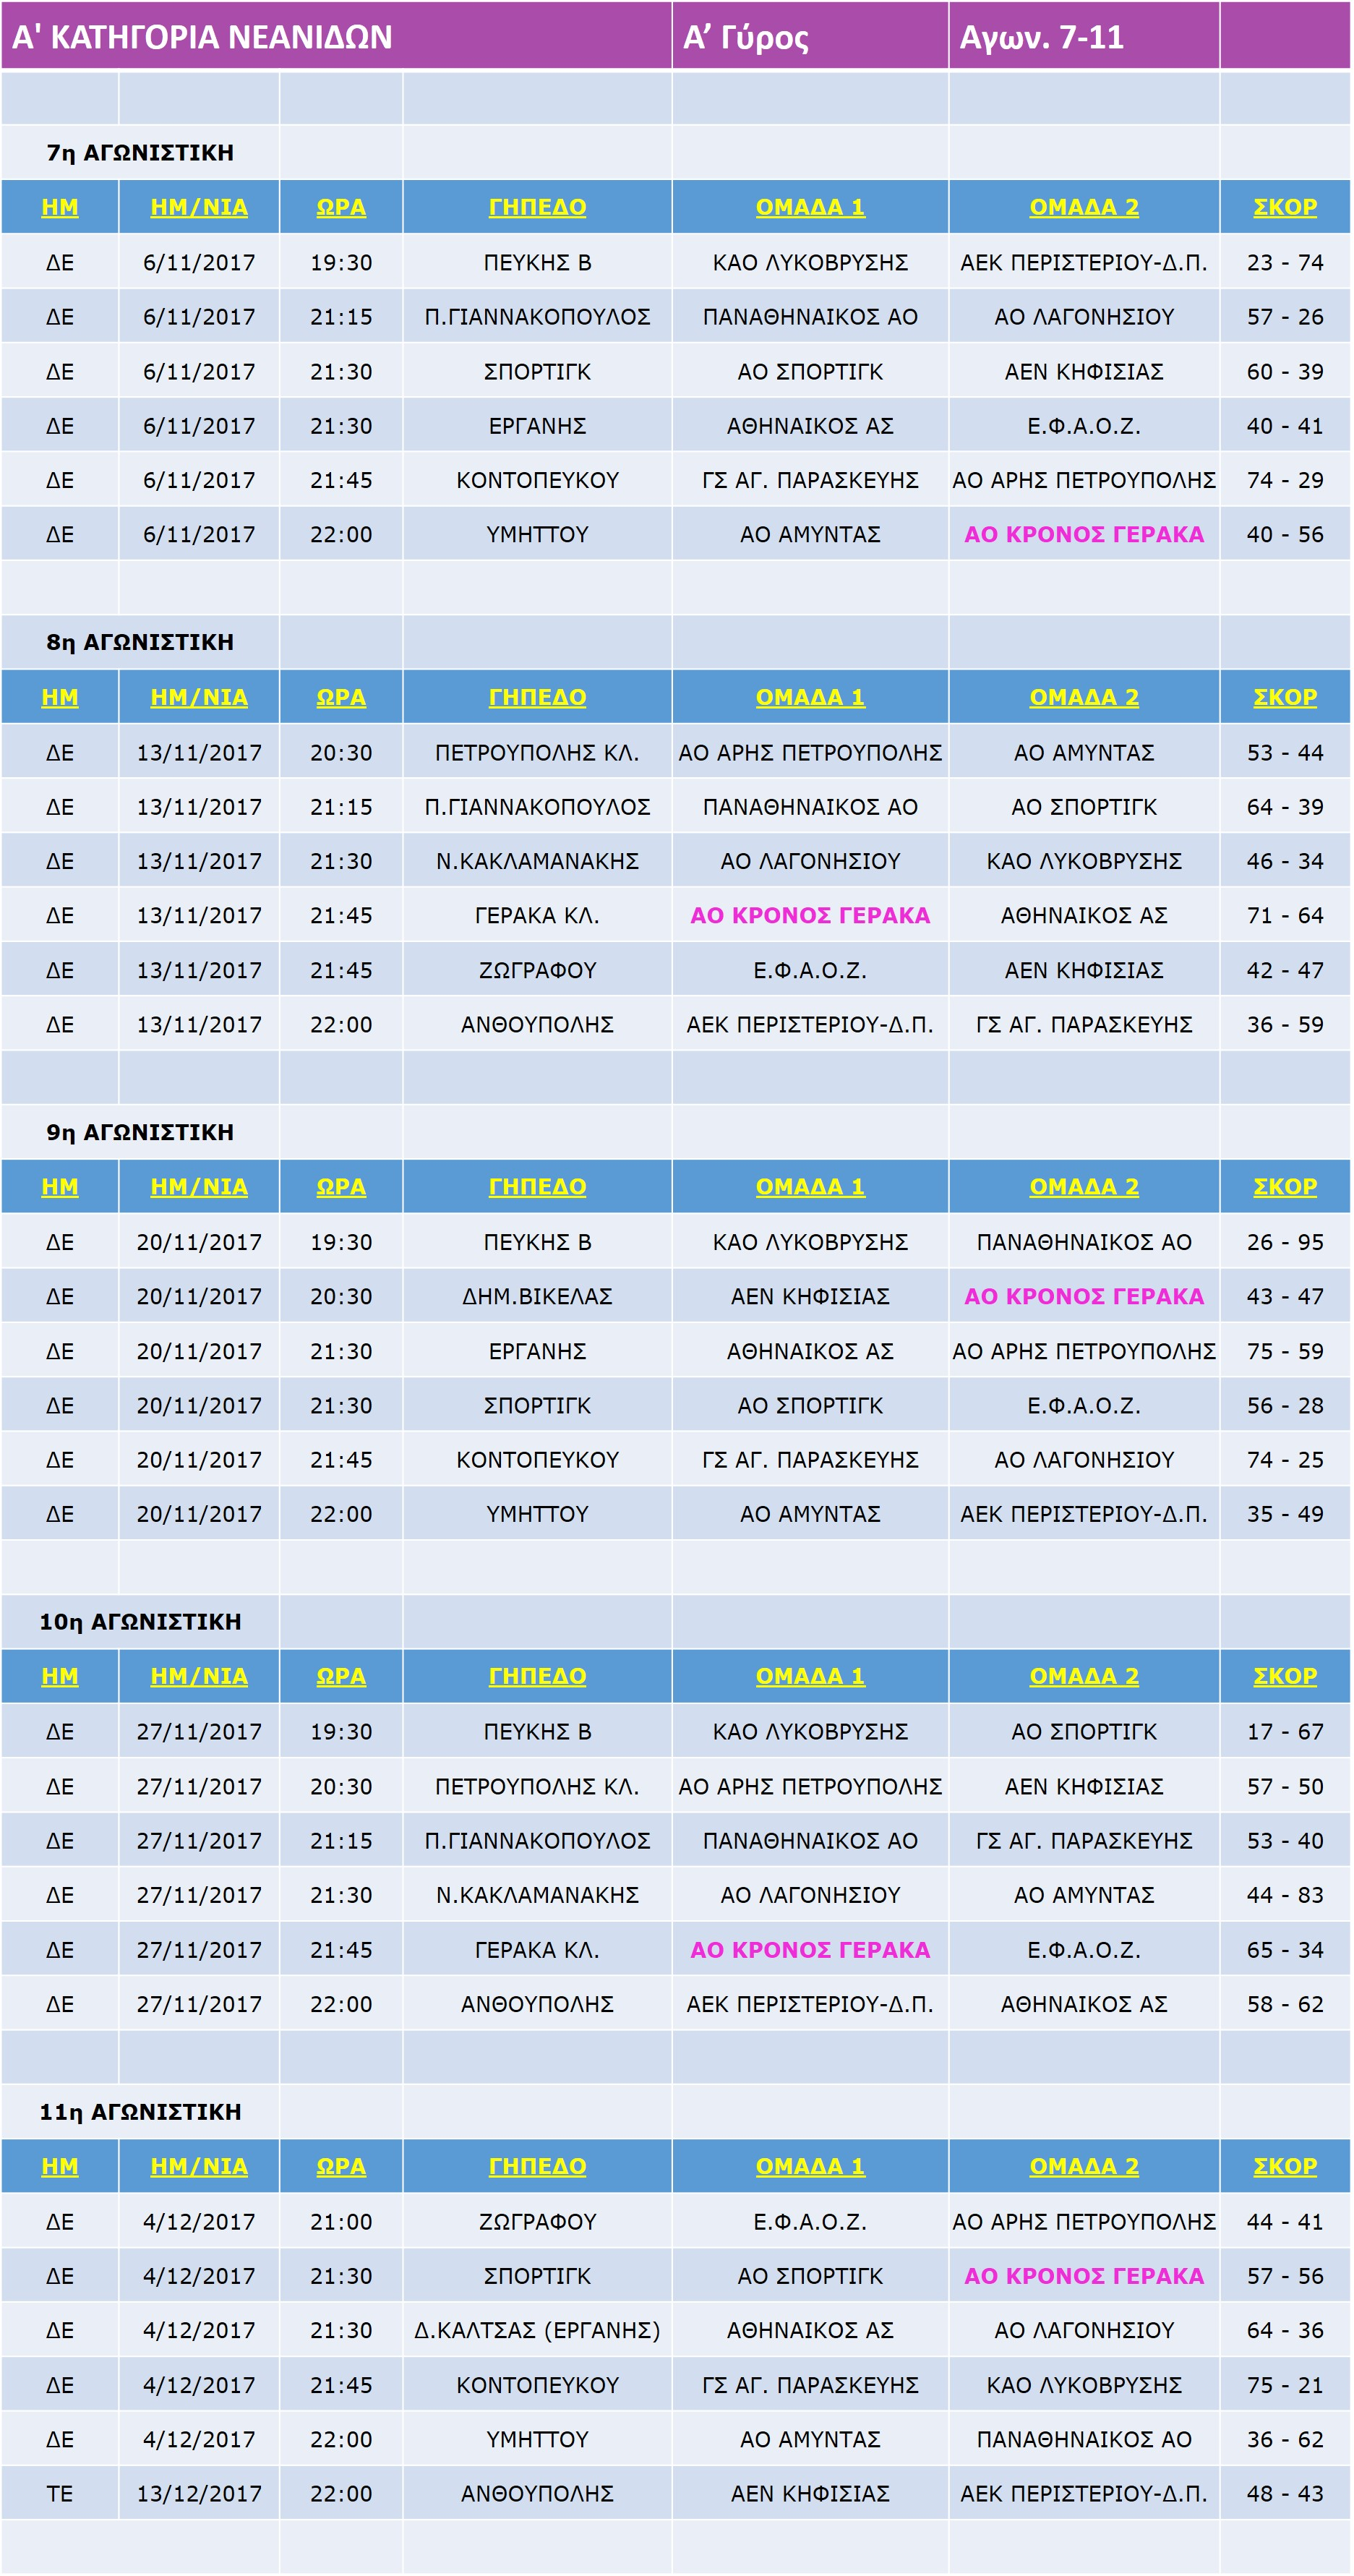 Neanides_upd3_Match_7-11-11